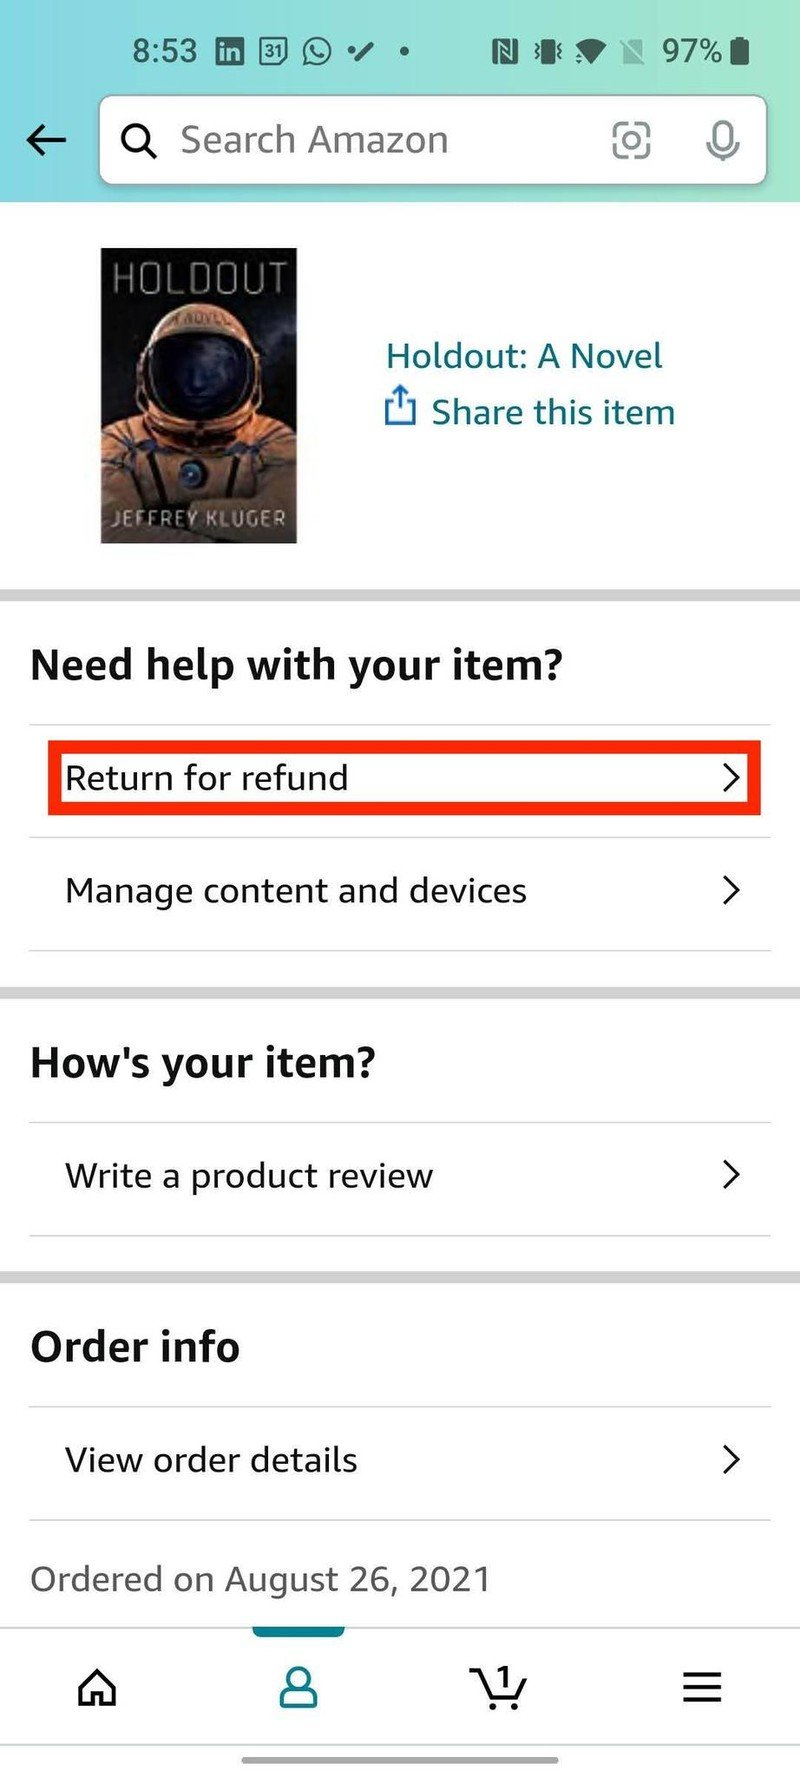 how-to-return-kindle-book-android-4.jpg